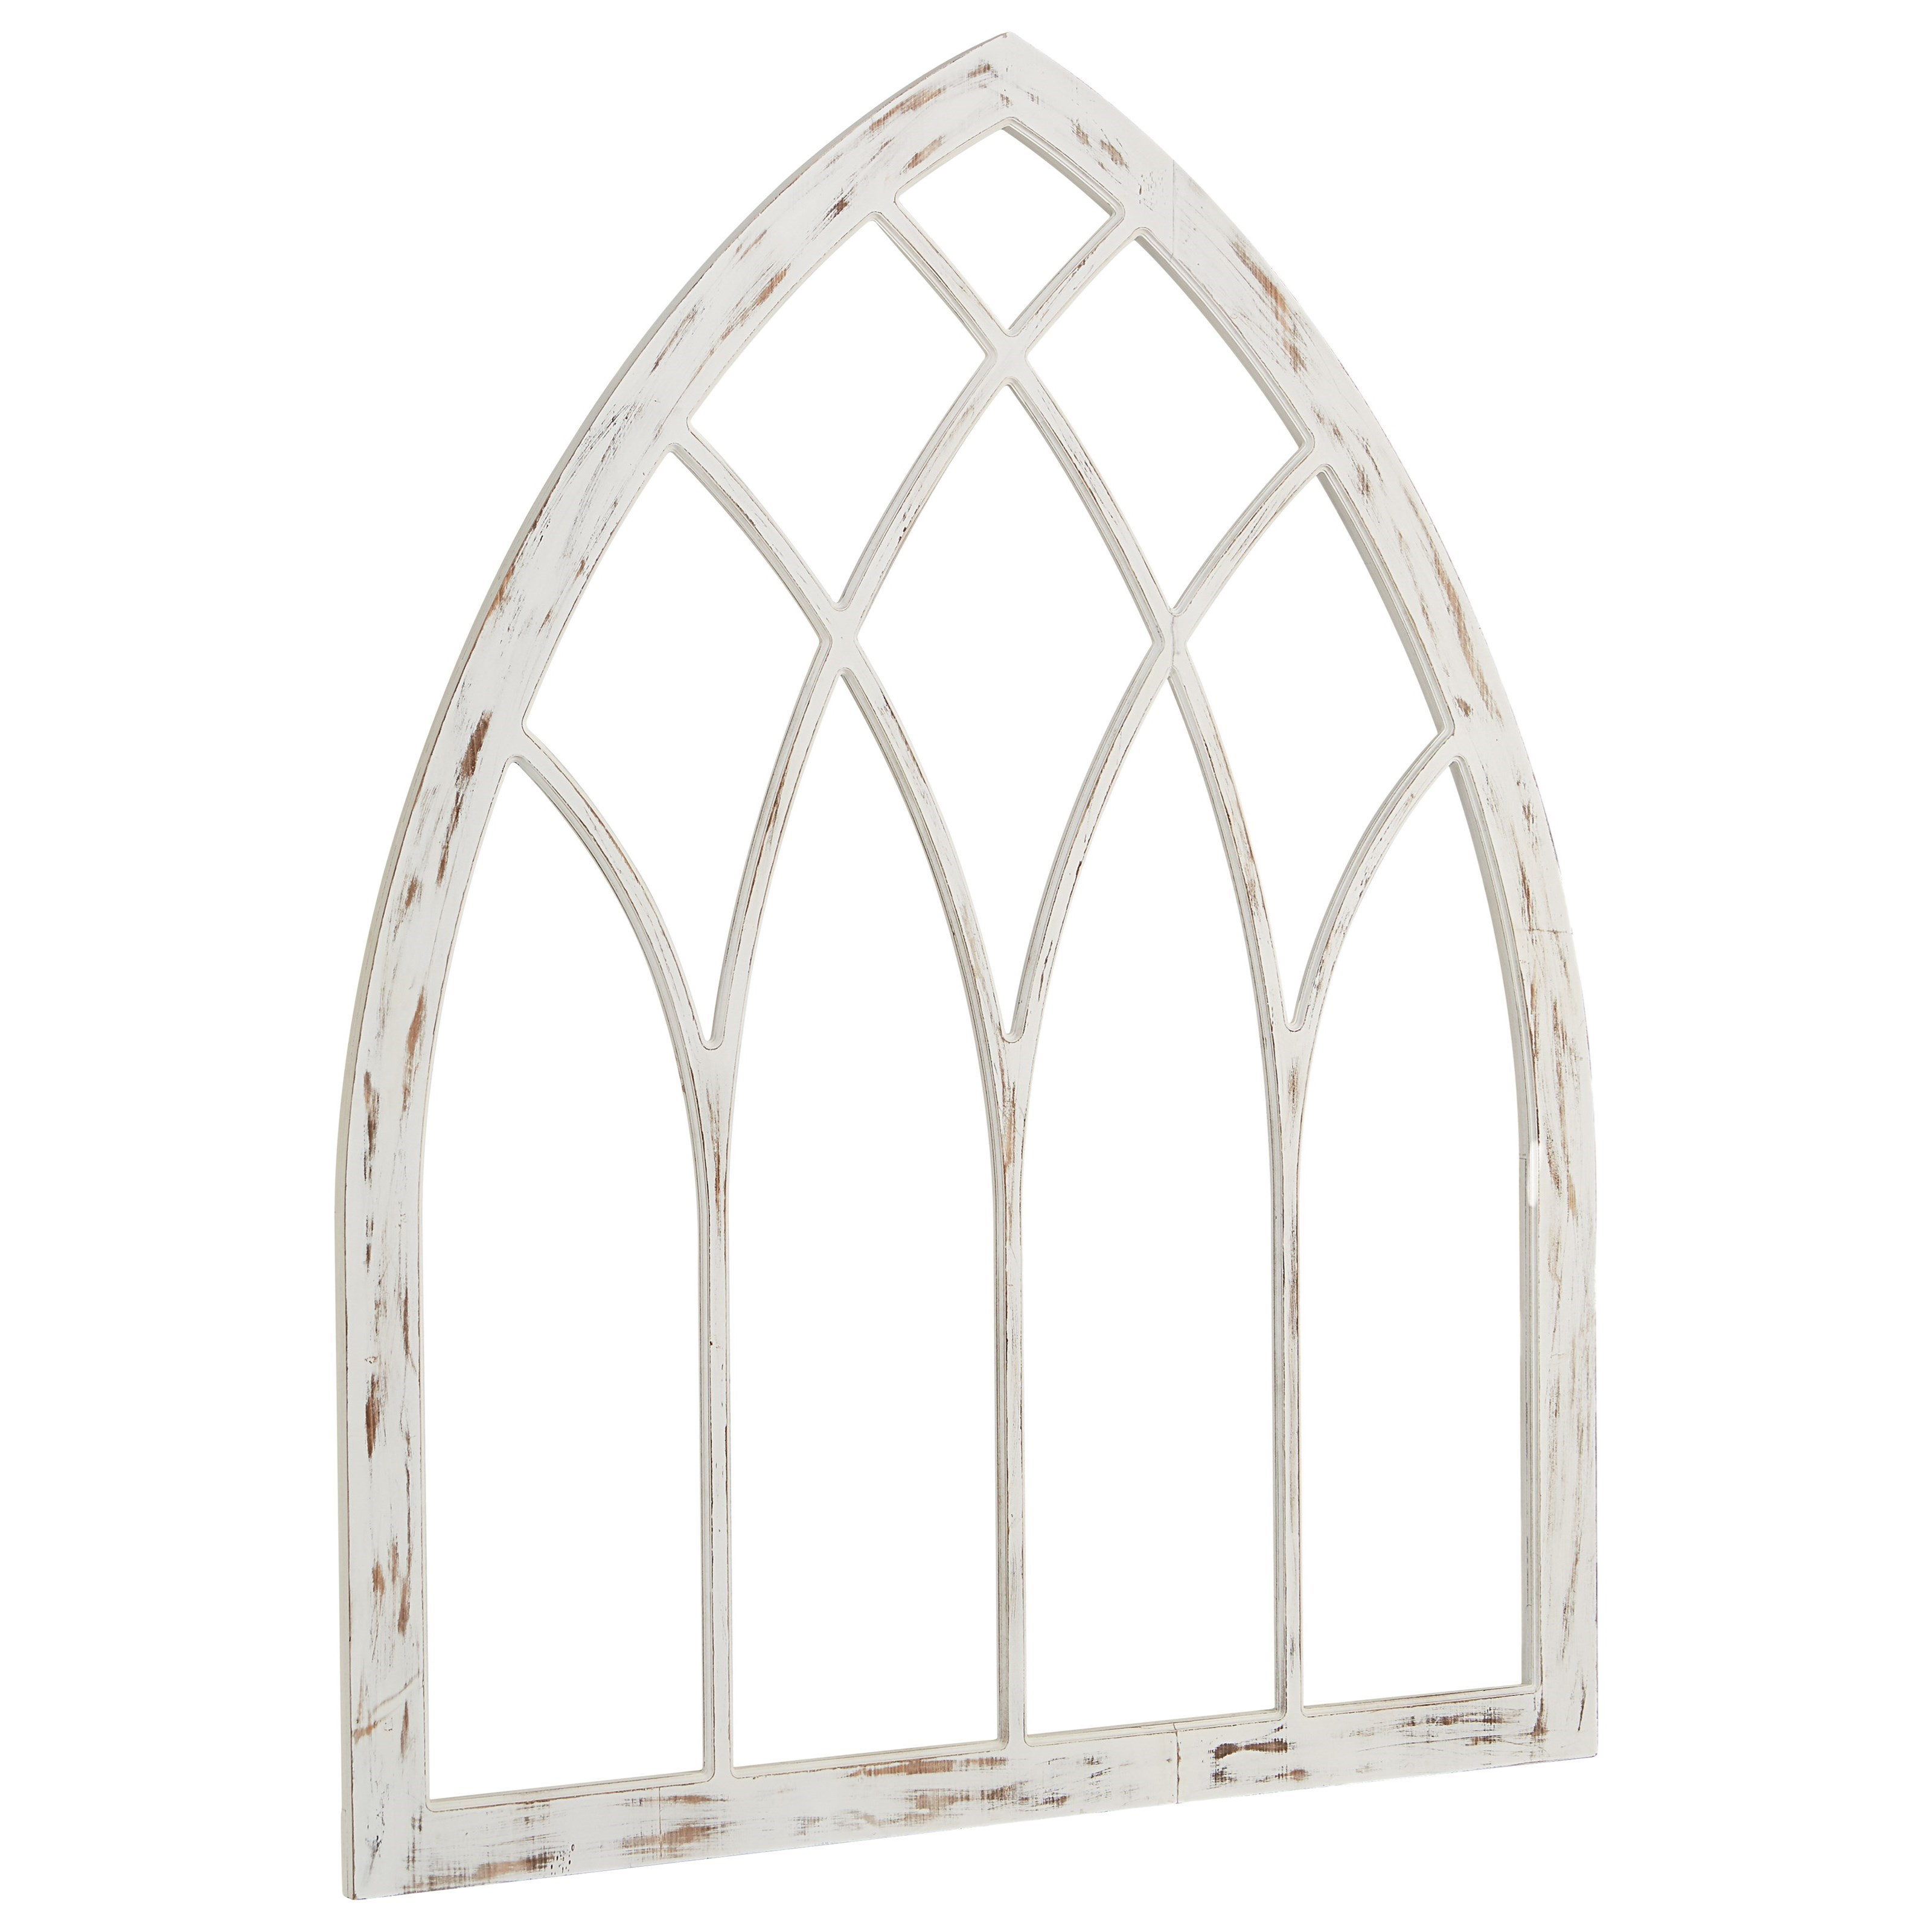 Magnolia Home by Joanna Gaines Accent Elements Arch Window  - Item Number: 80301529